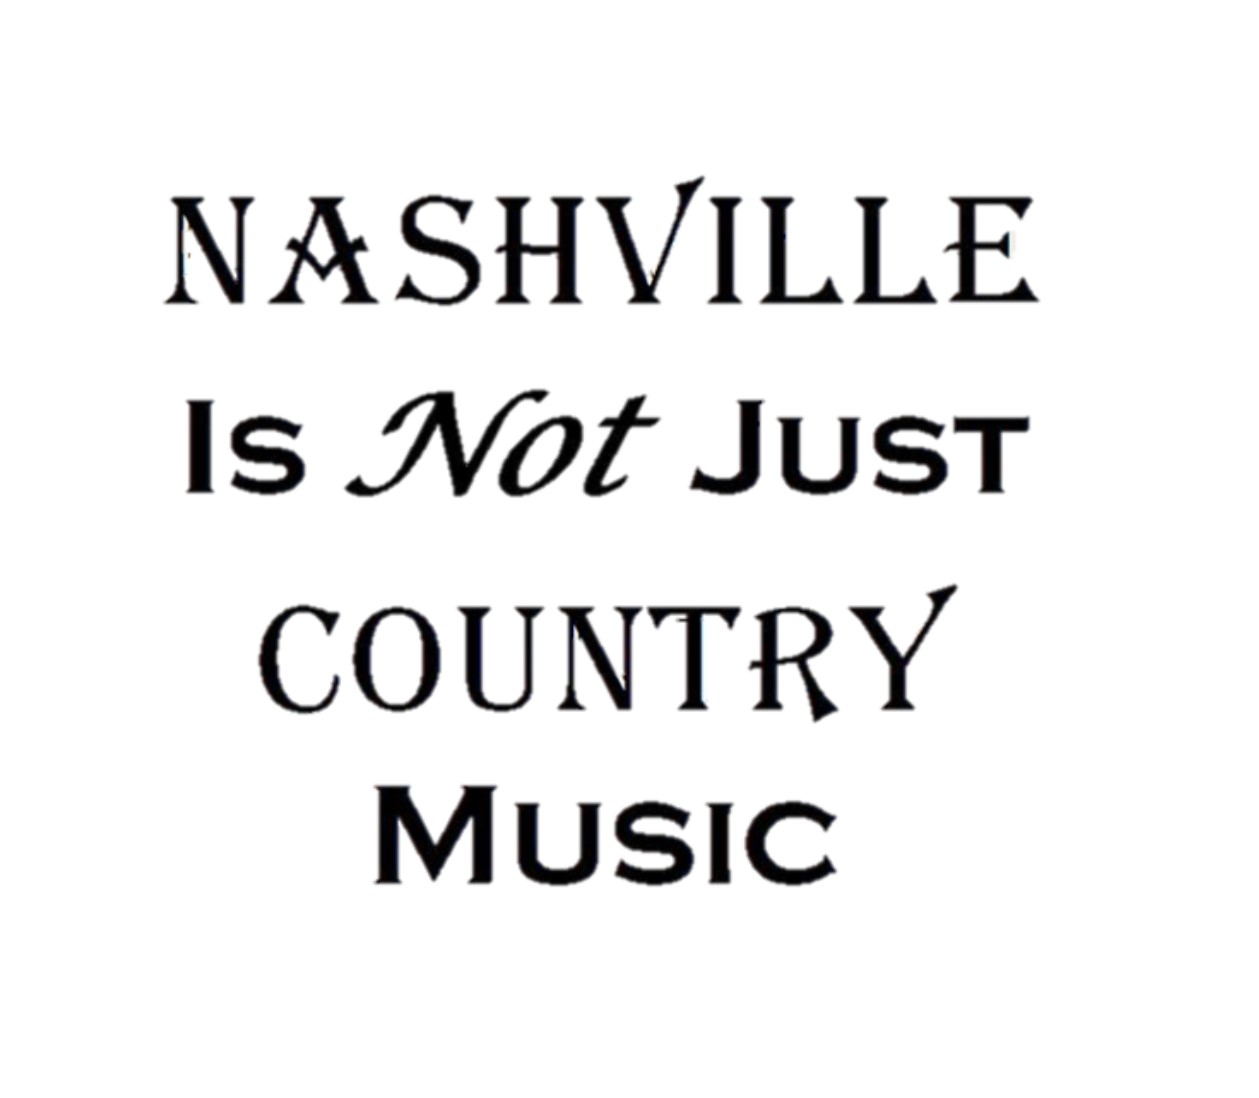 Nashville Is Not Just Country Music